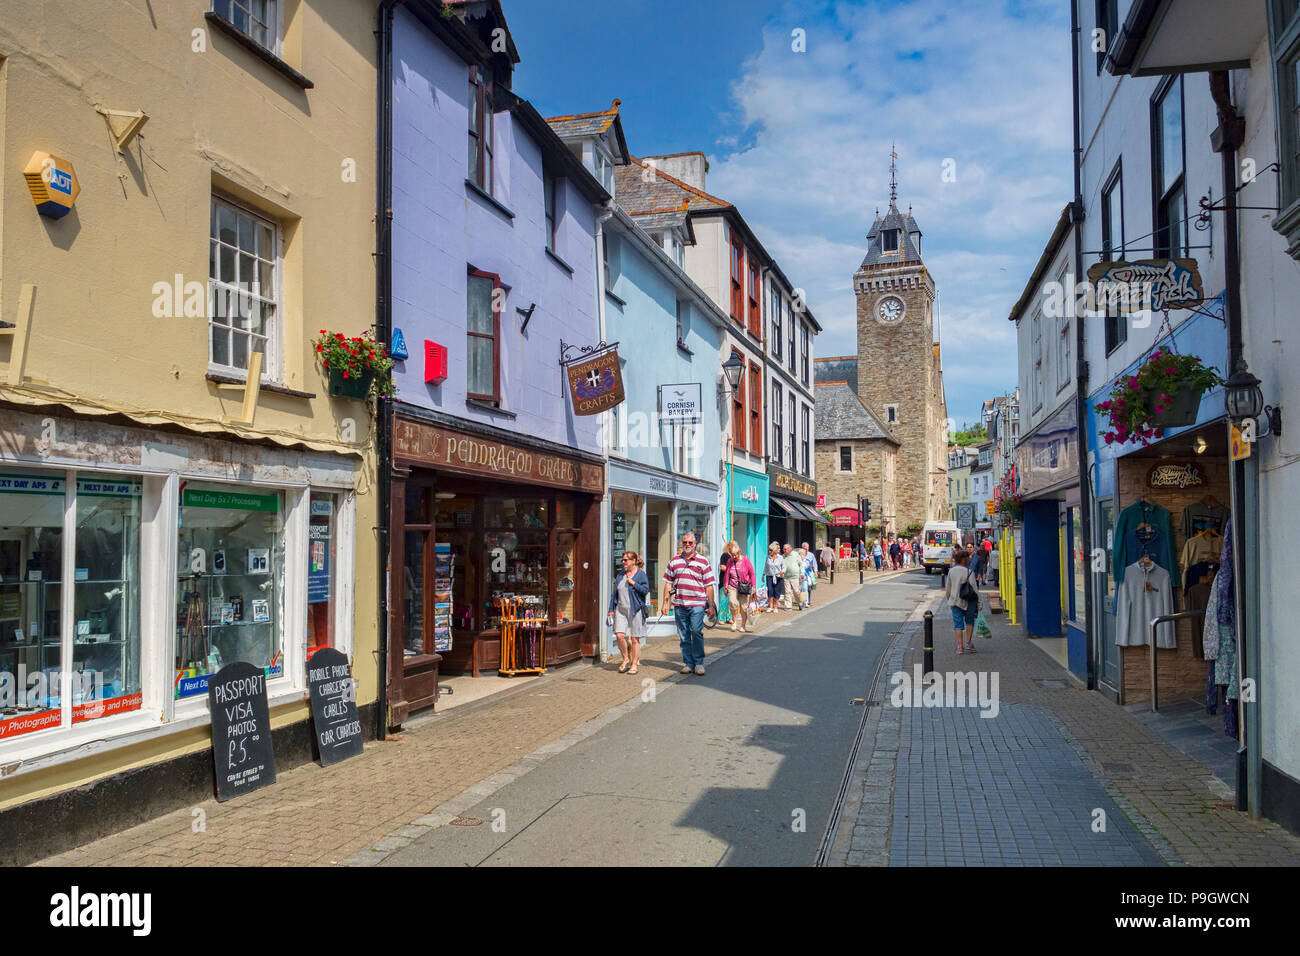 6 June 2018: Looe, Cornwall, UK - Shopping in Fore Street on a warm spring day. - Stock Image